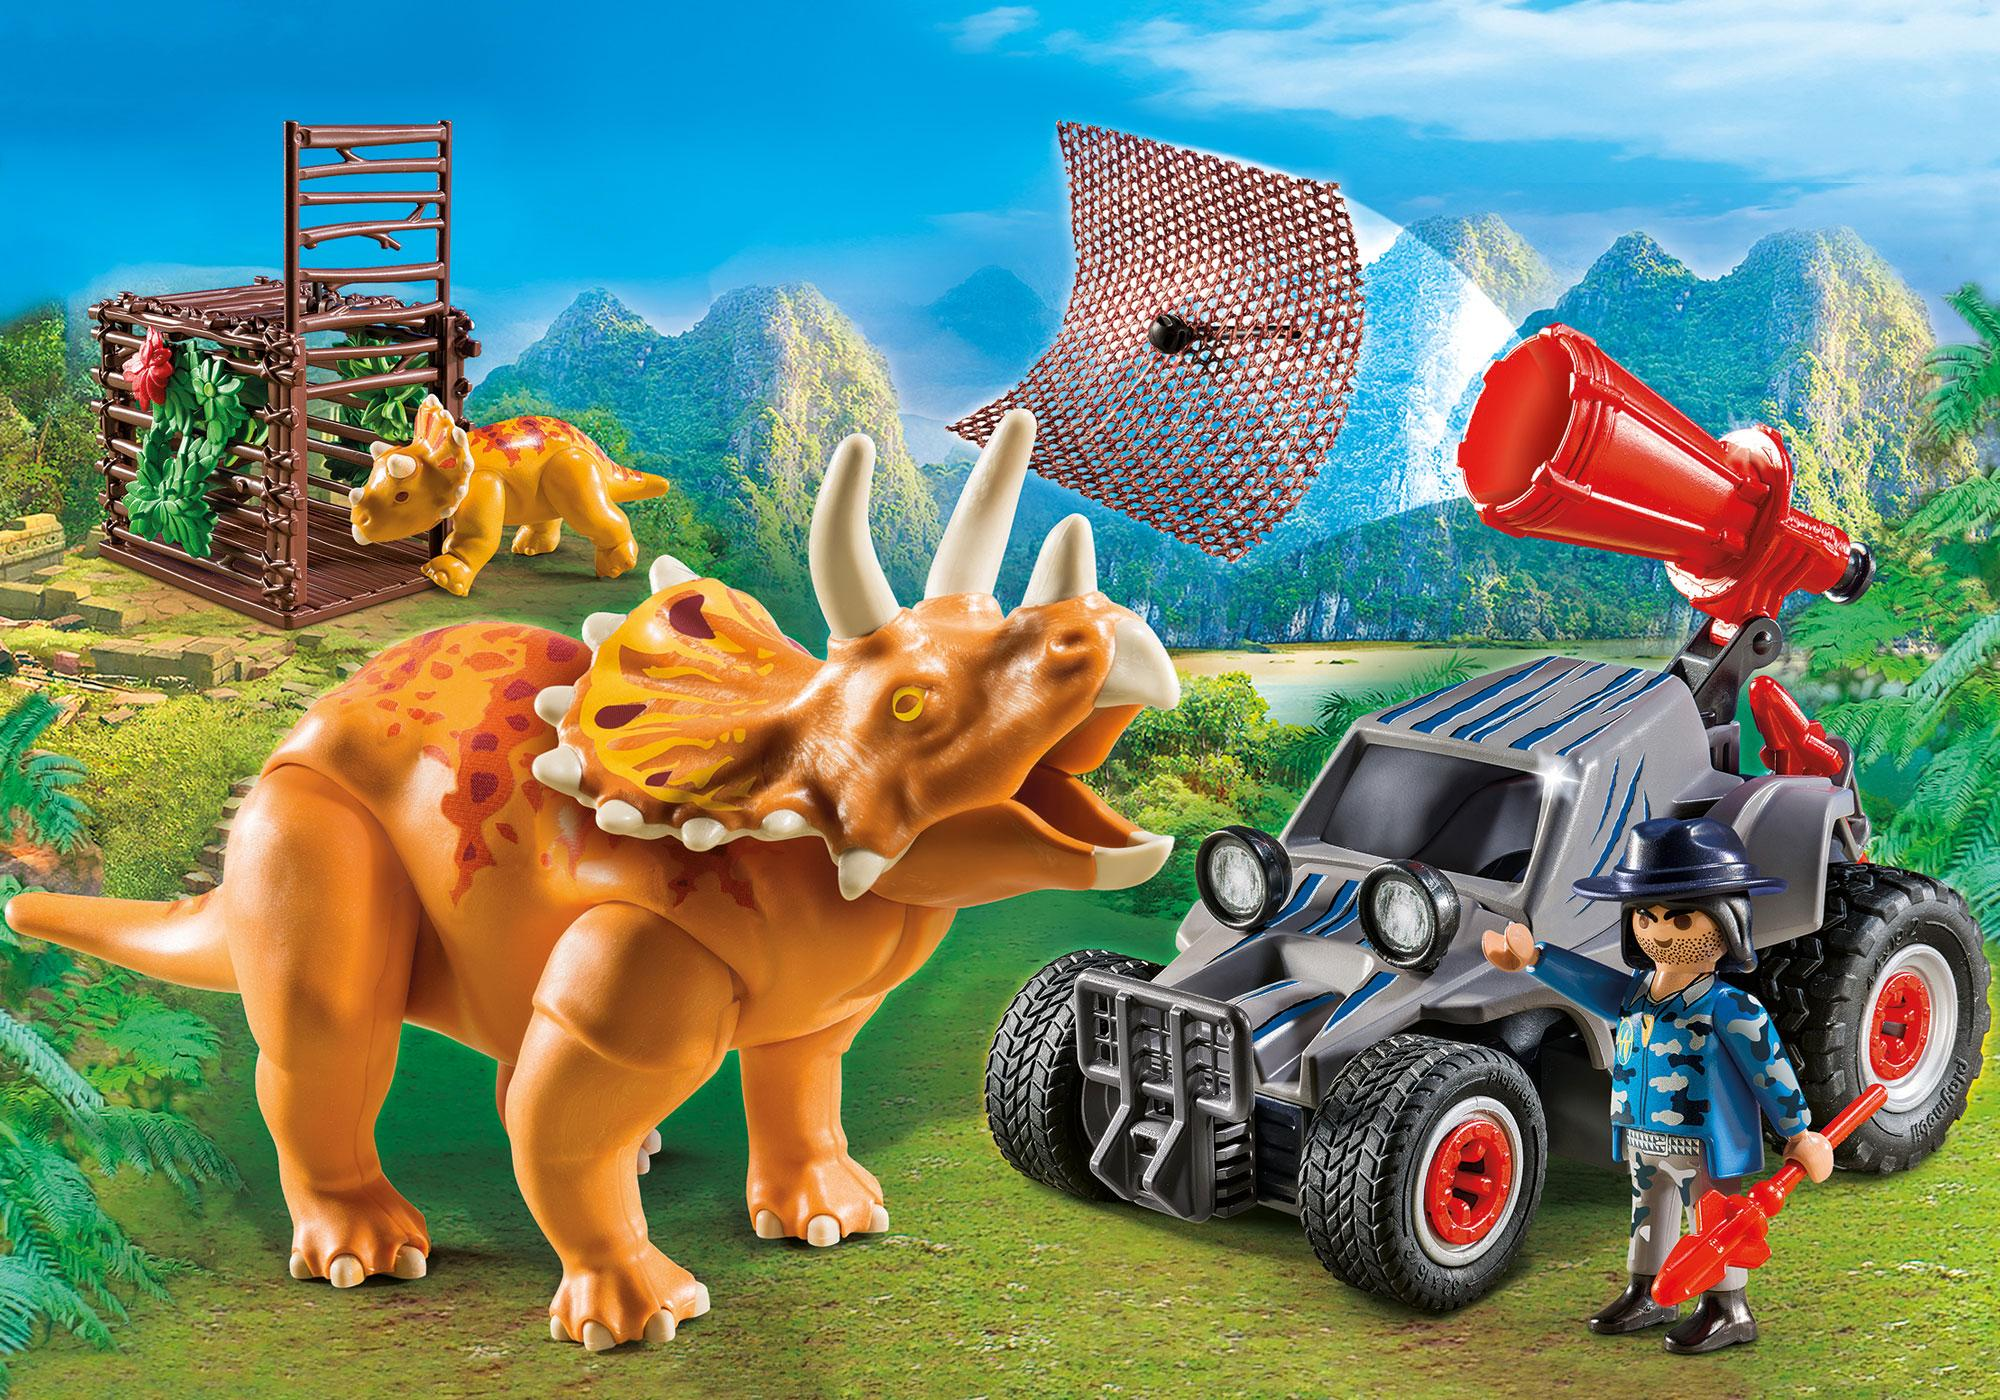 9434_product_detail/Enemy Quad with Triceratops